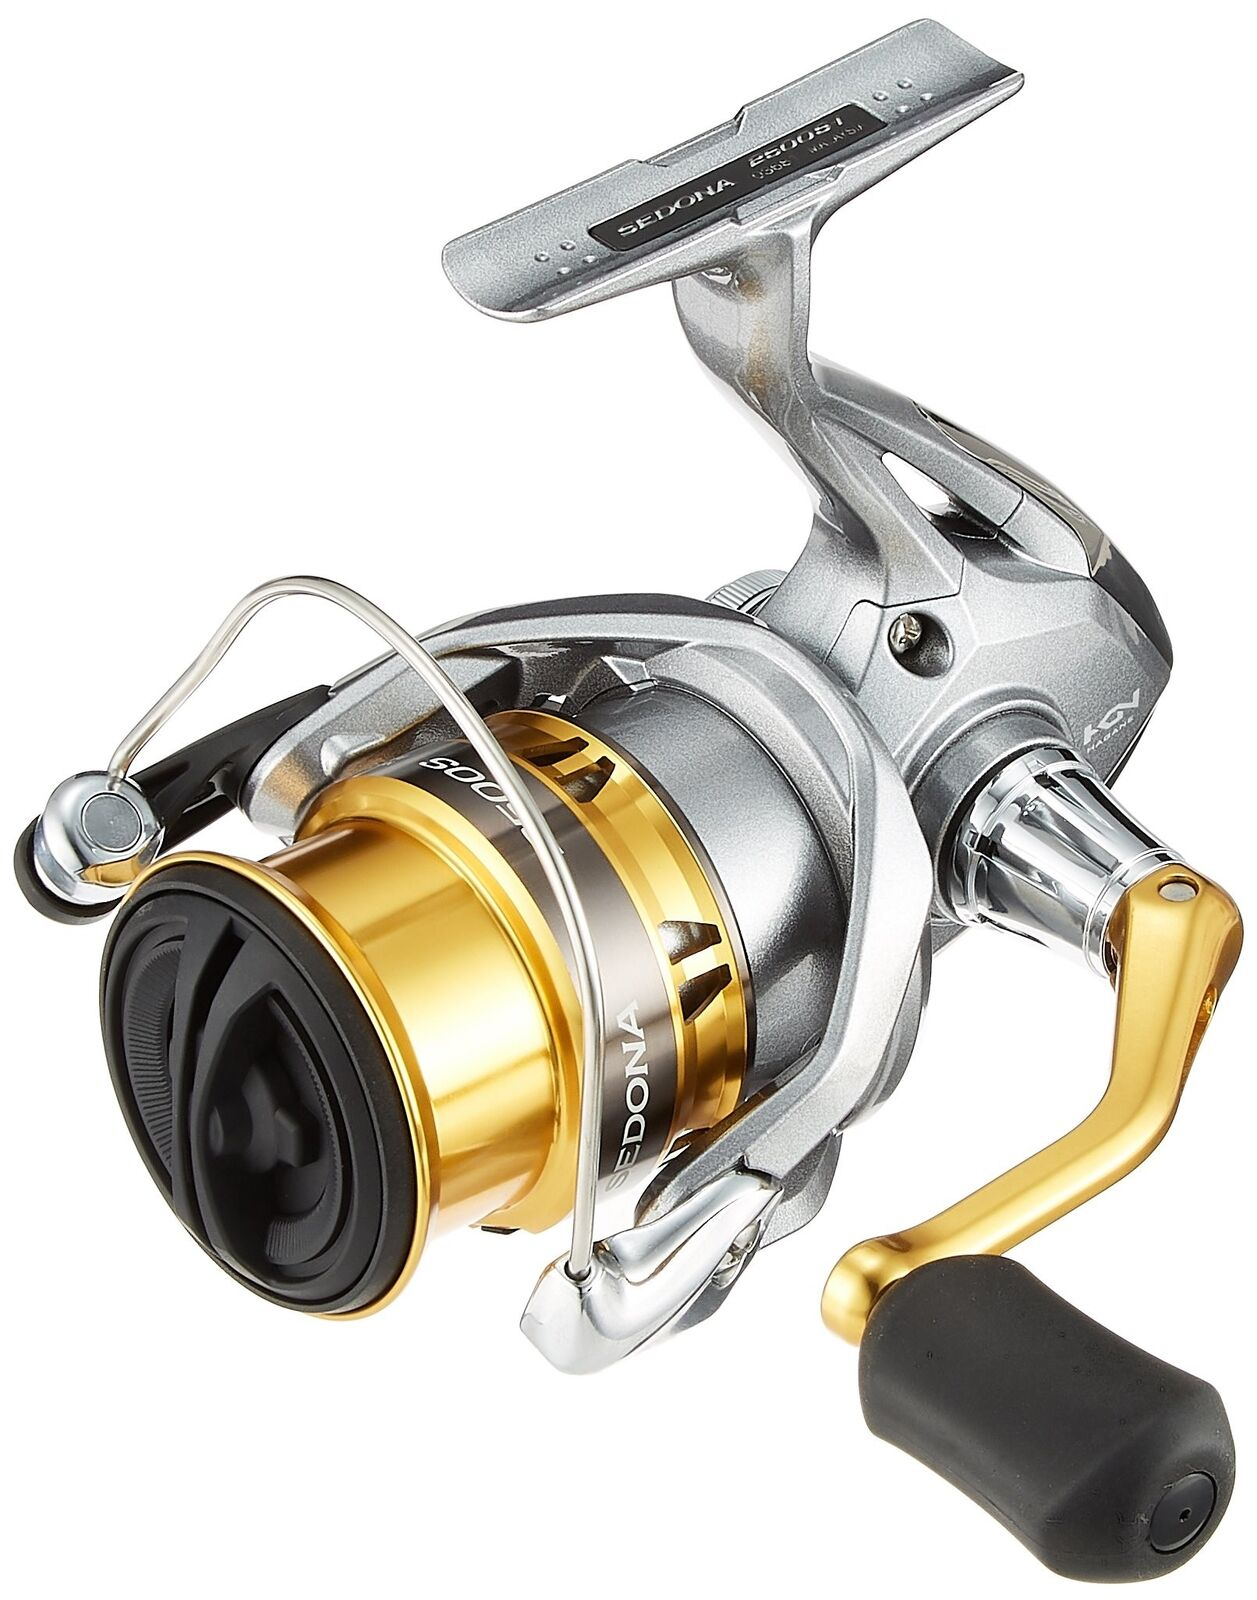 SHIMANO Sedona FI, Spinning Fishing Rreel, Hagane  Gear, Model 2017, SE2500SFI  factory direct and quick delivery